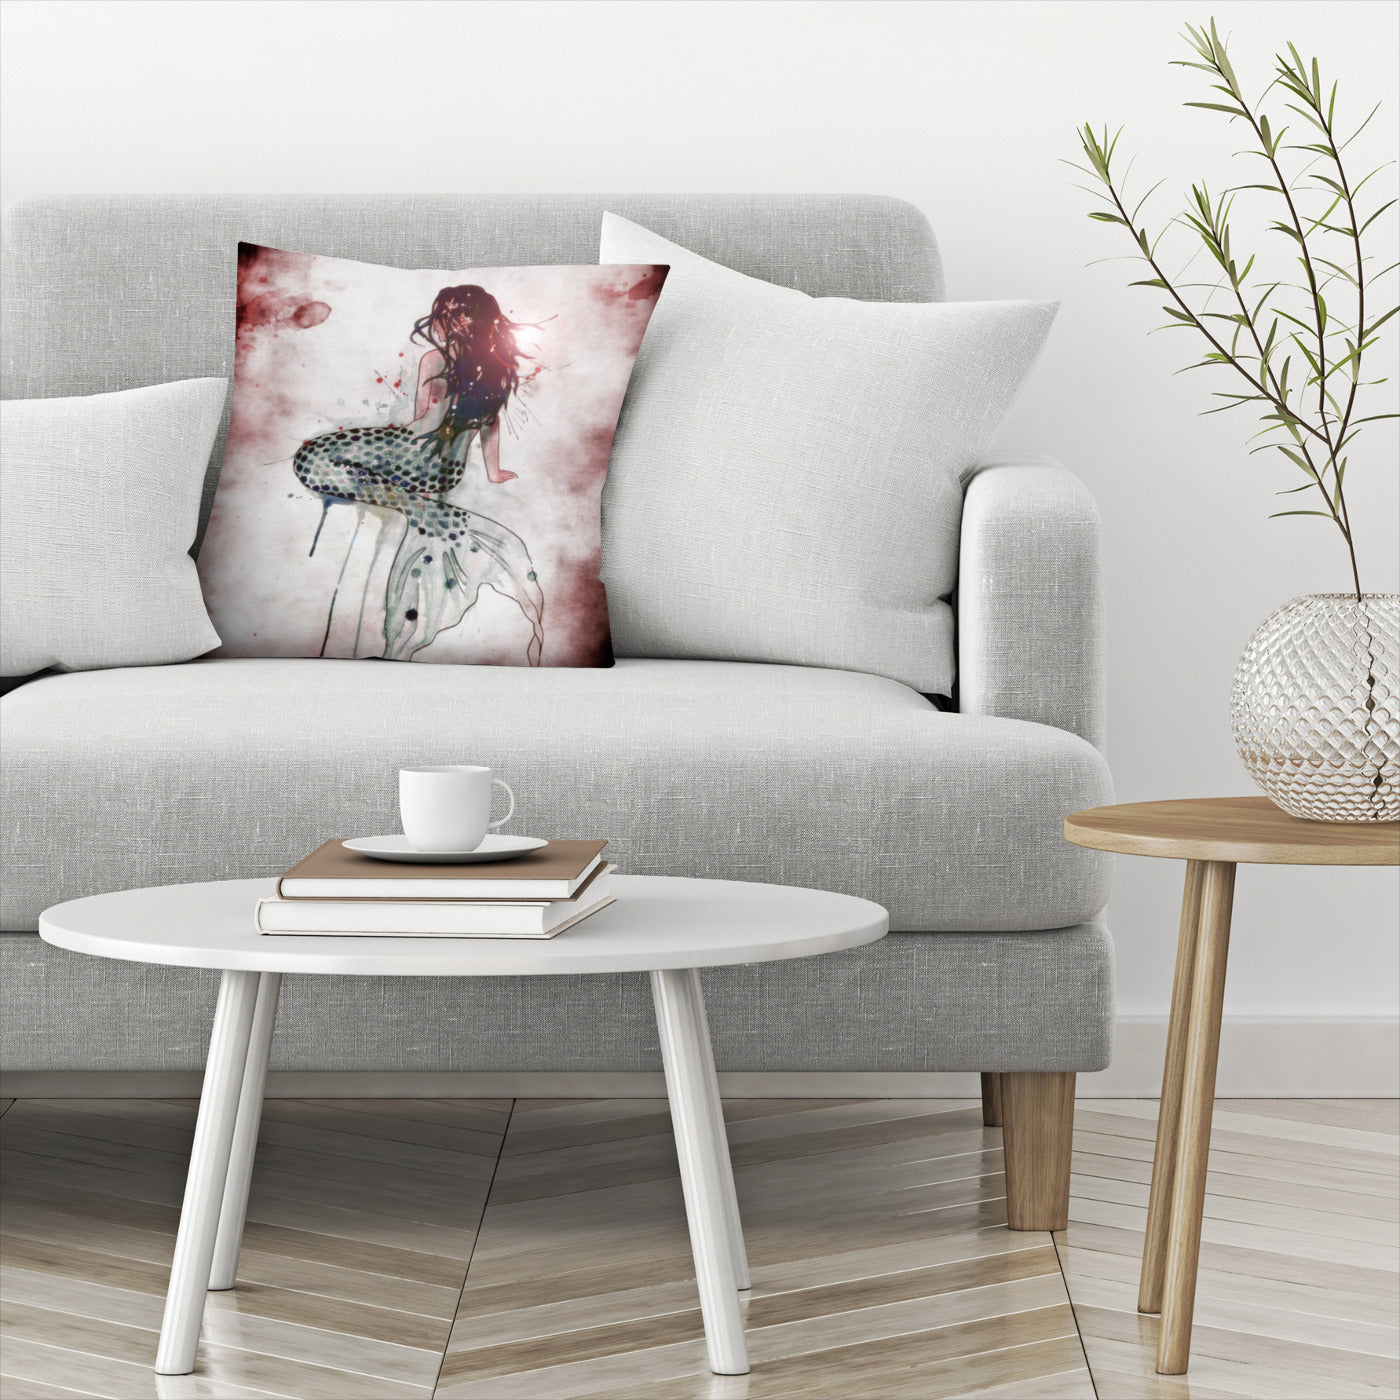 Mermaid 2 by Sam Nagel Decorative Pillow - Decorative Pillow - Americanflat